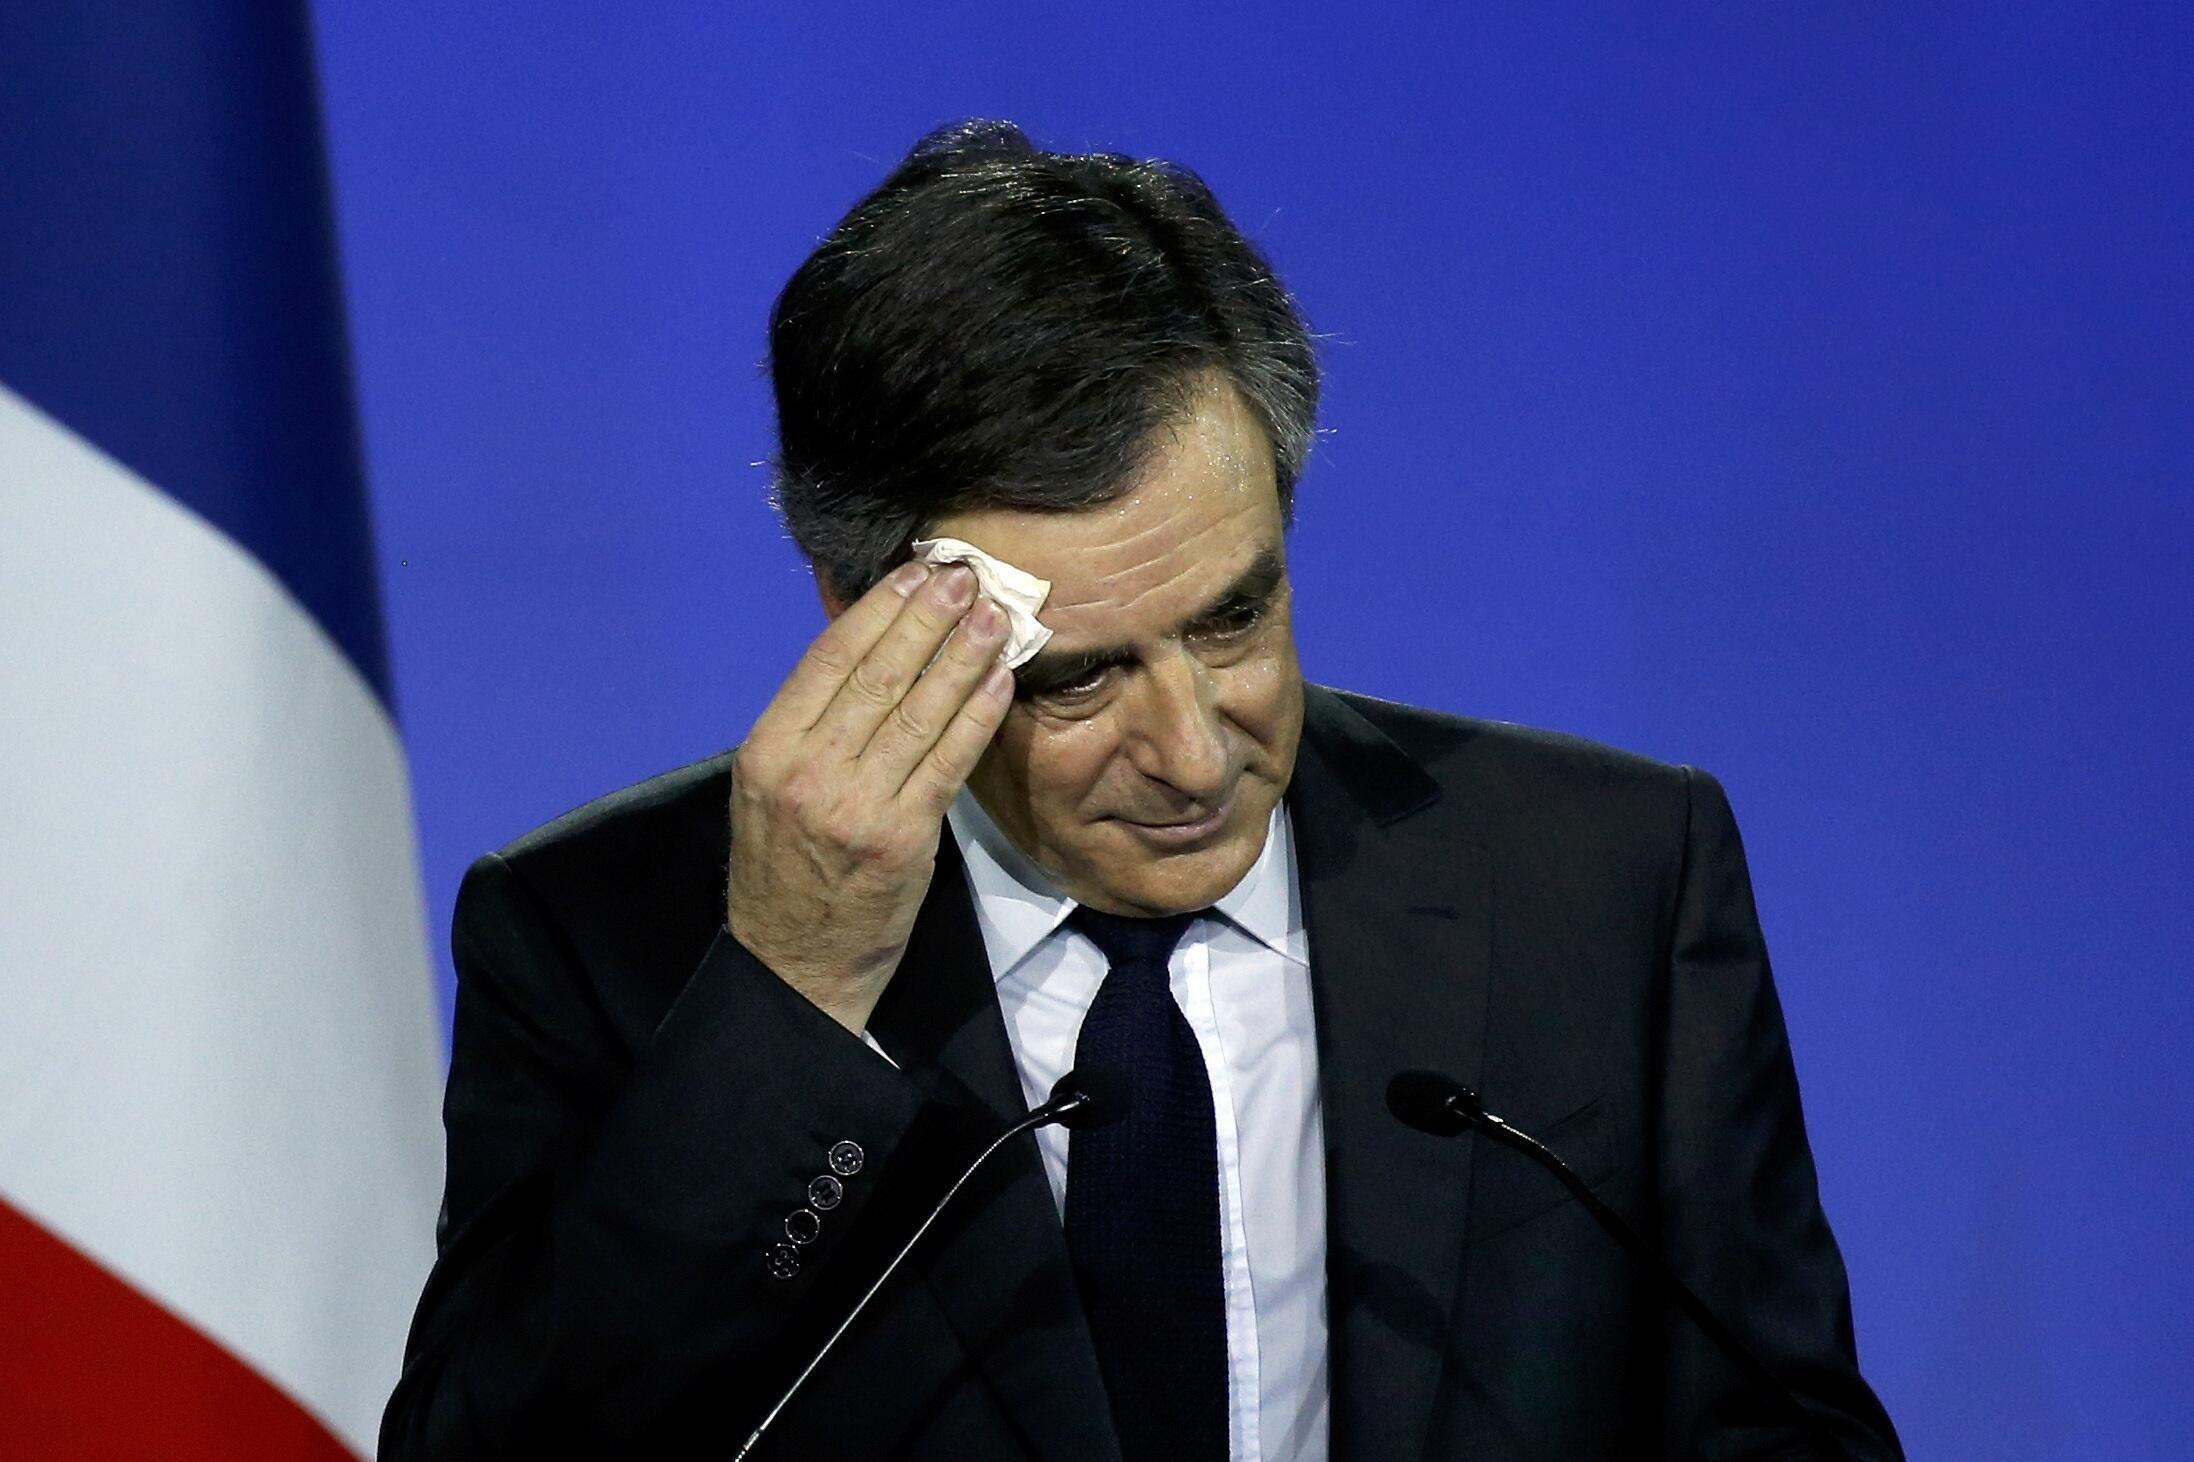 Francois Fillon former French prime minister, member of The Republicans political party and 2017 presidential candidate of the French centre-right, reacts as he attends a political rally in Paris, France, January 29, 2017.